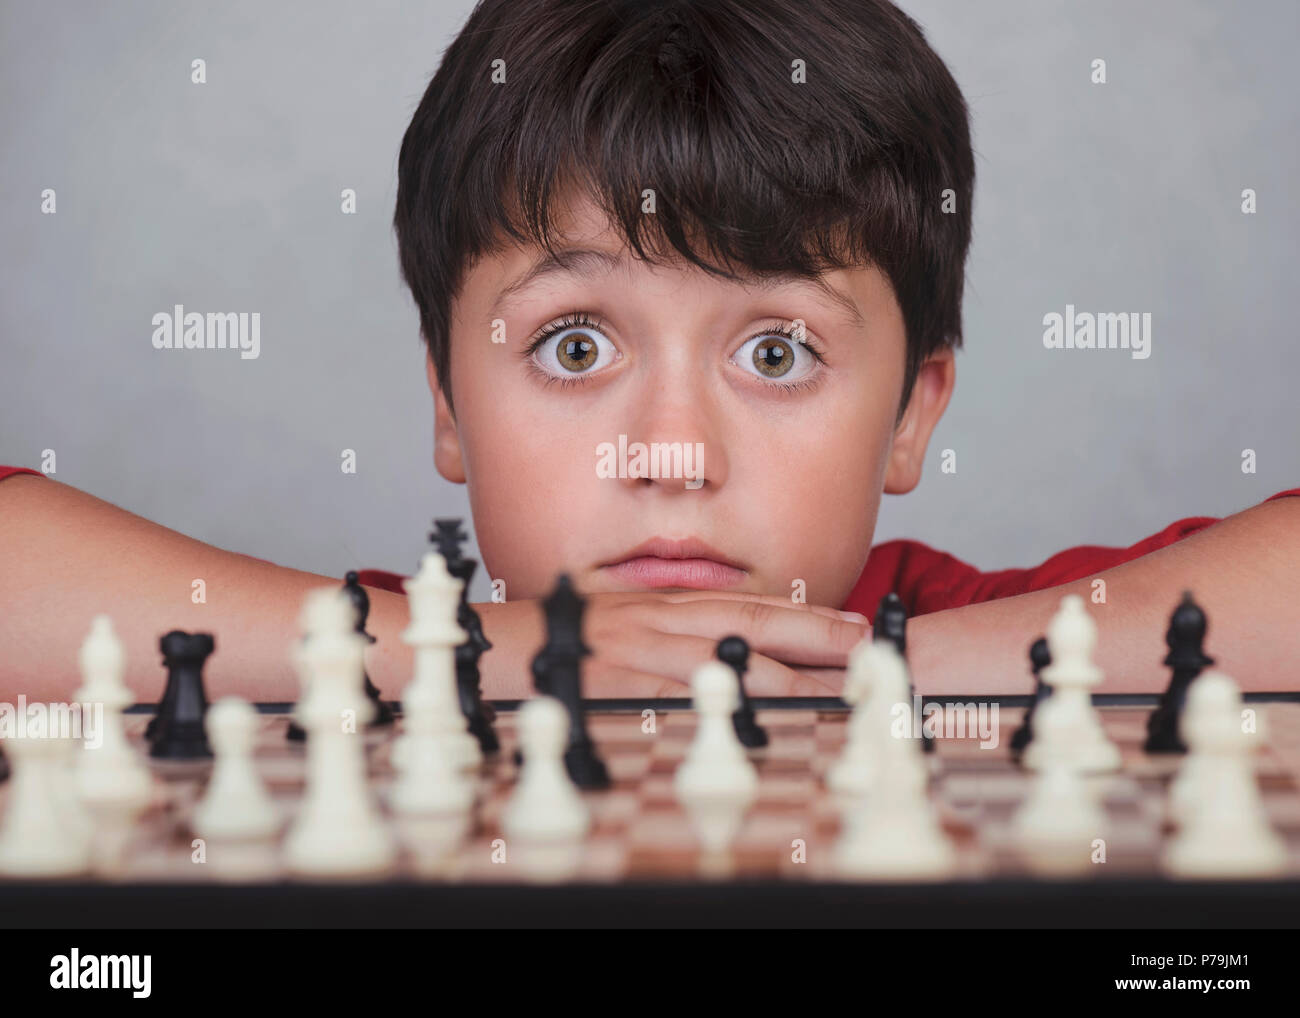 Little boy playing chess on gray background - Stock Image